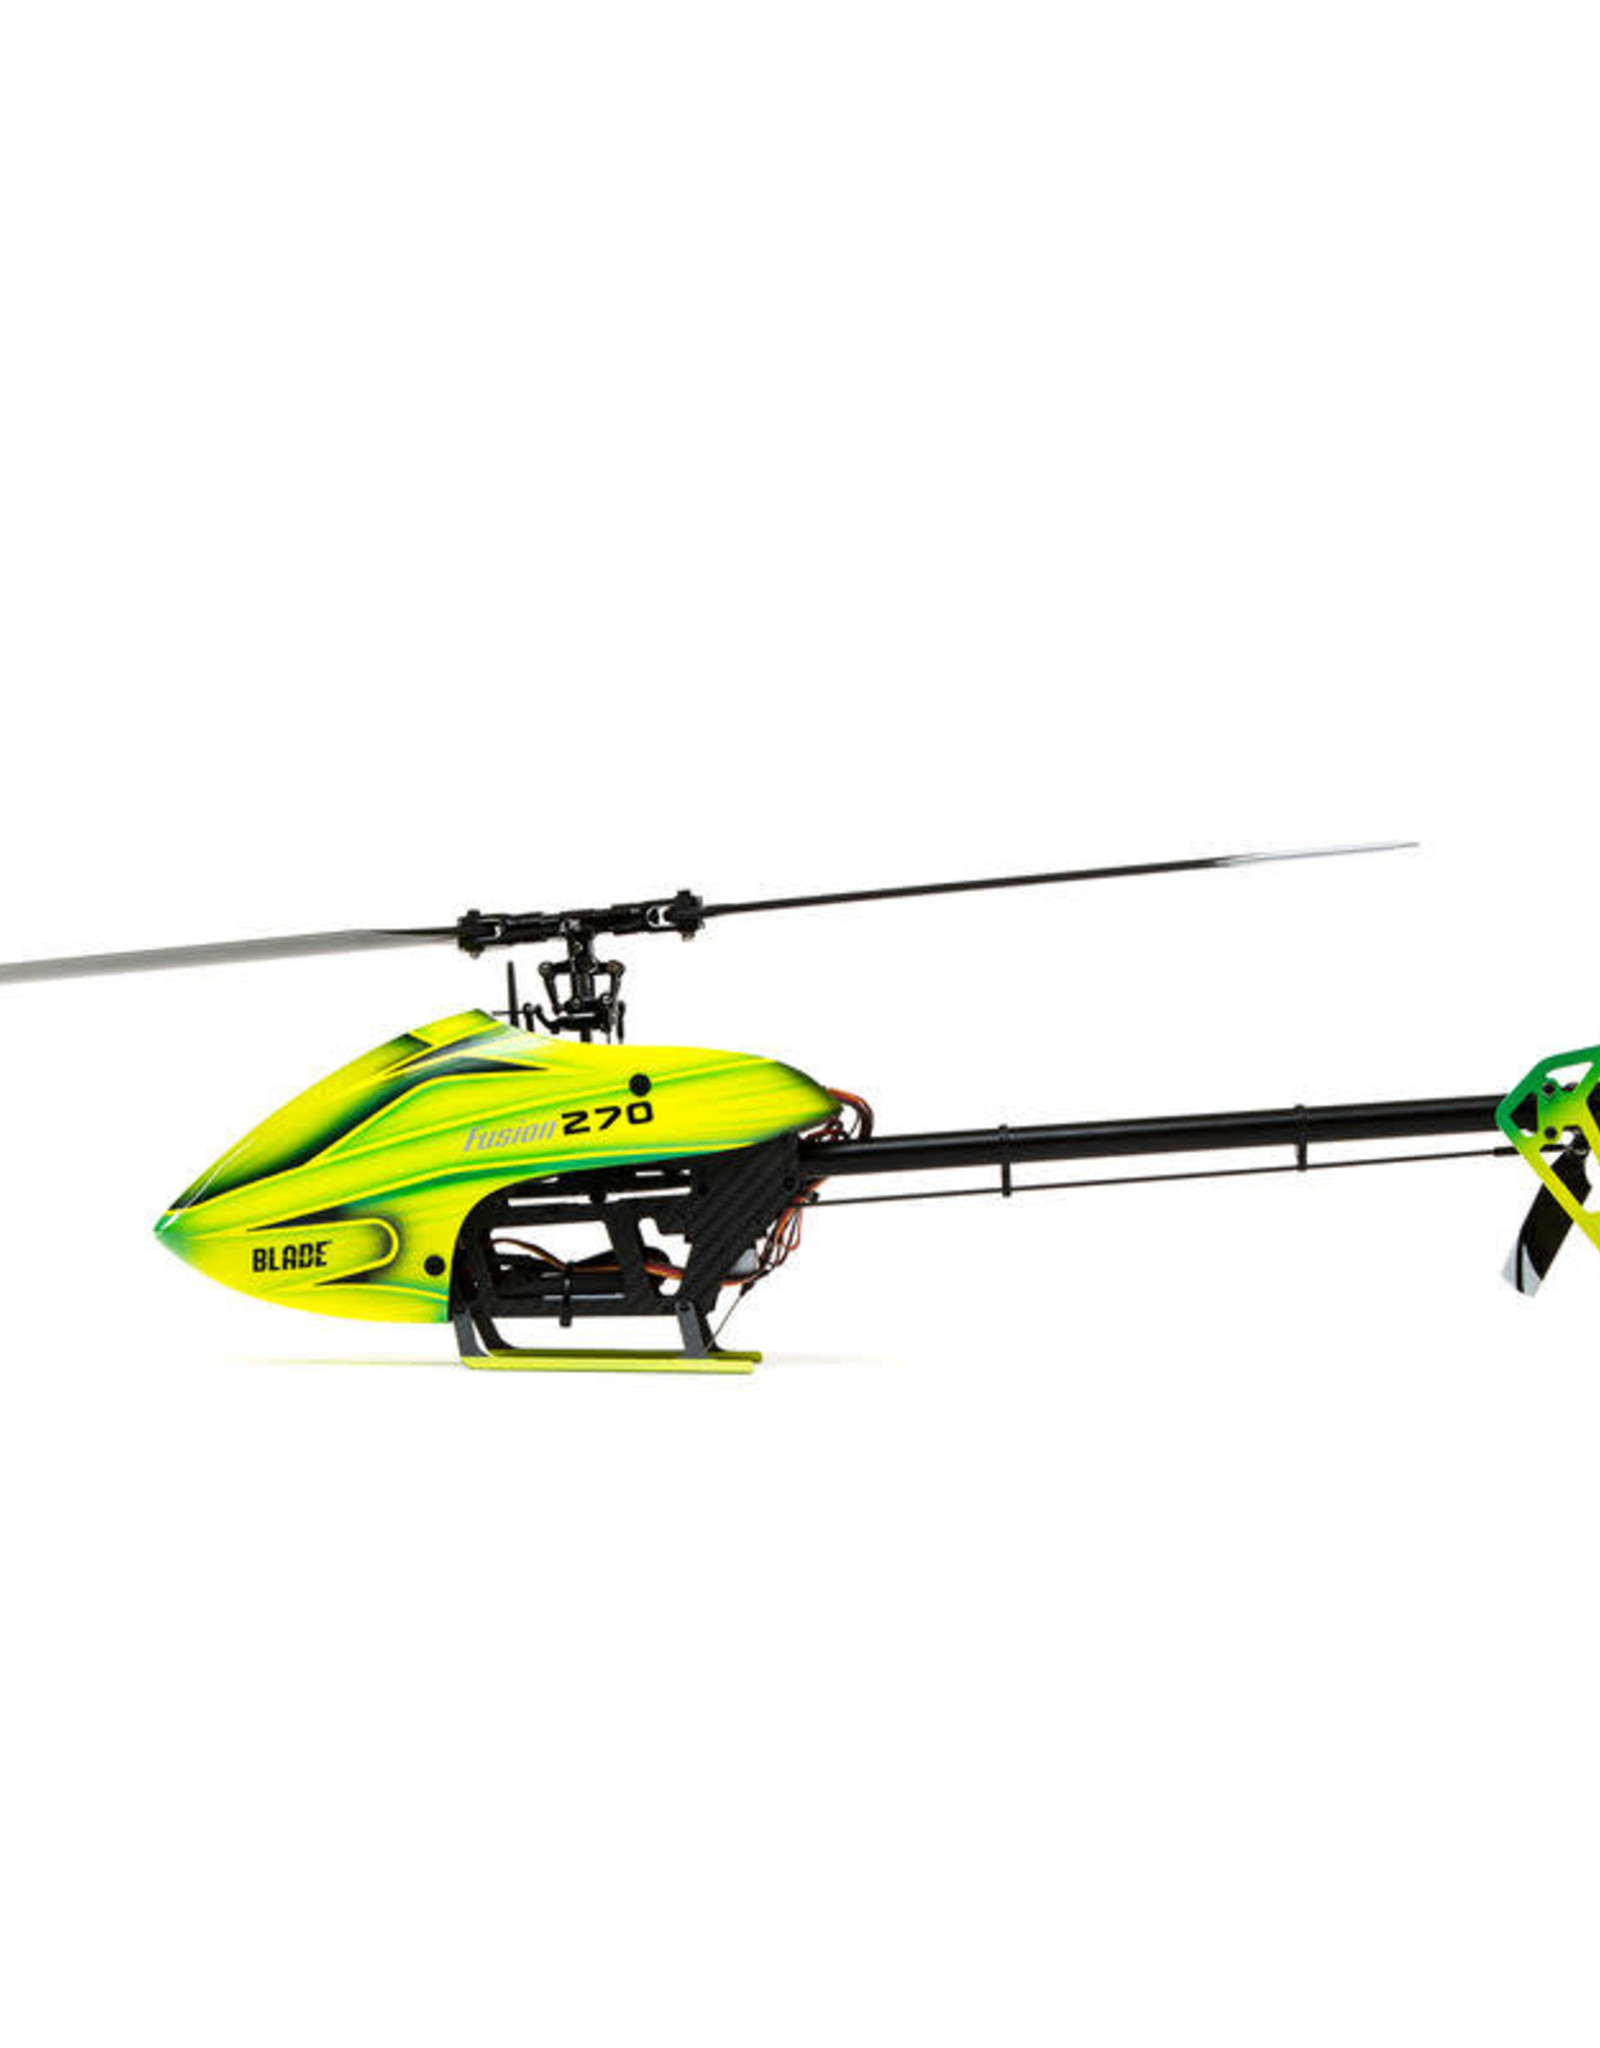 Blade BLH5350 Fusion 270 BNF Basic